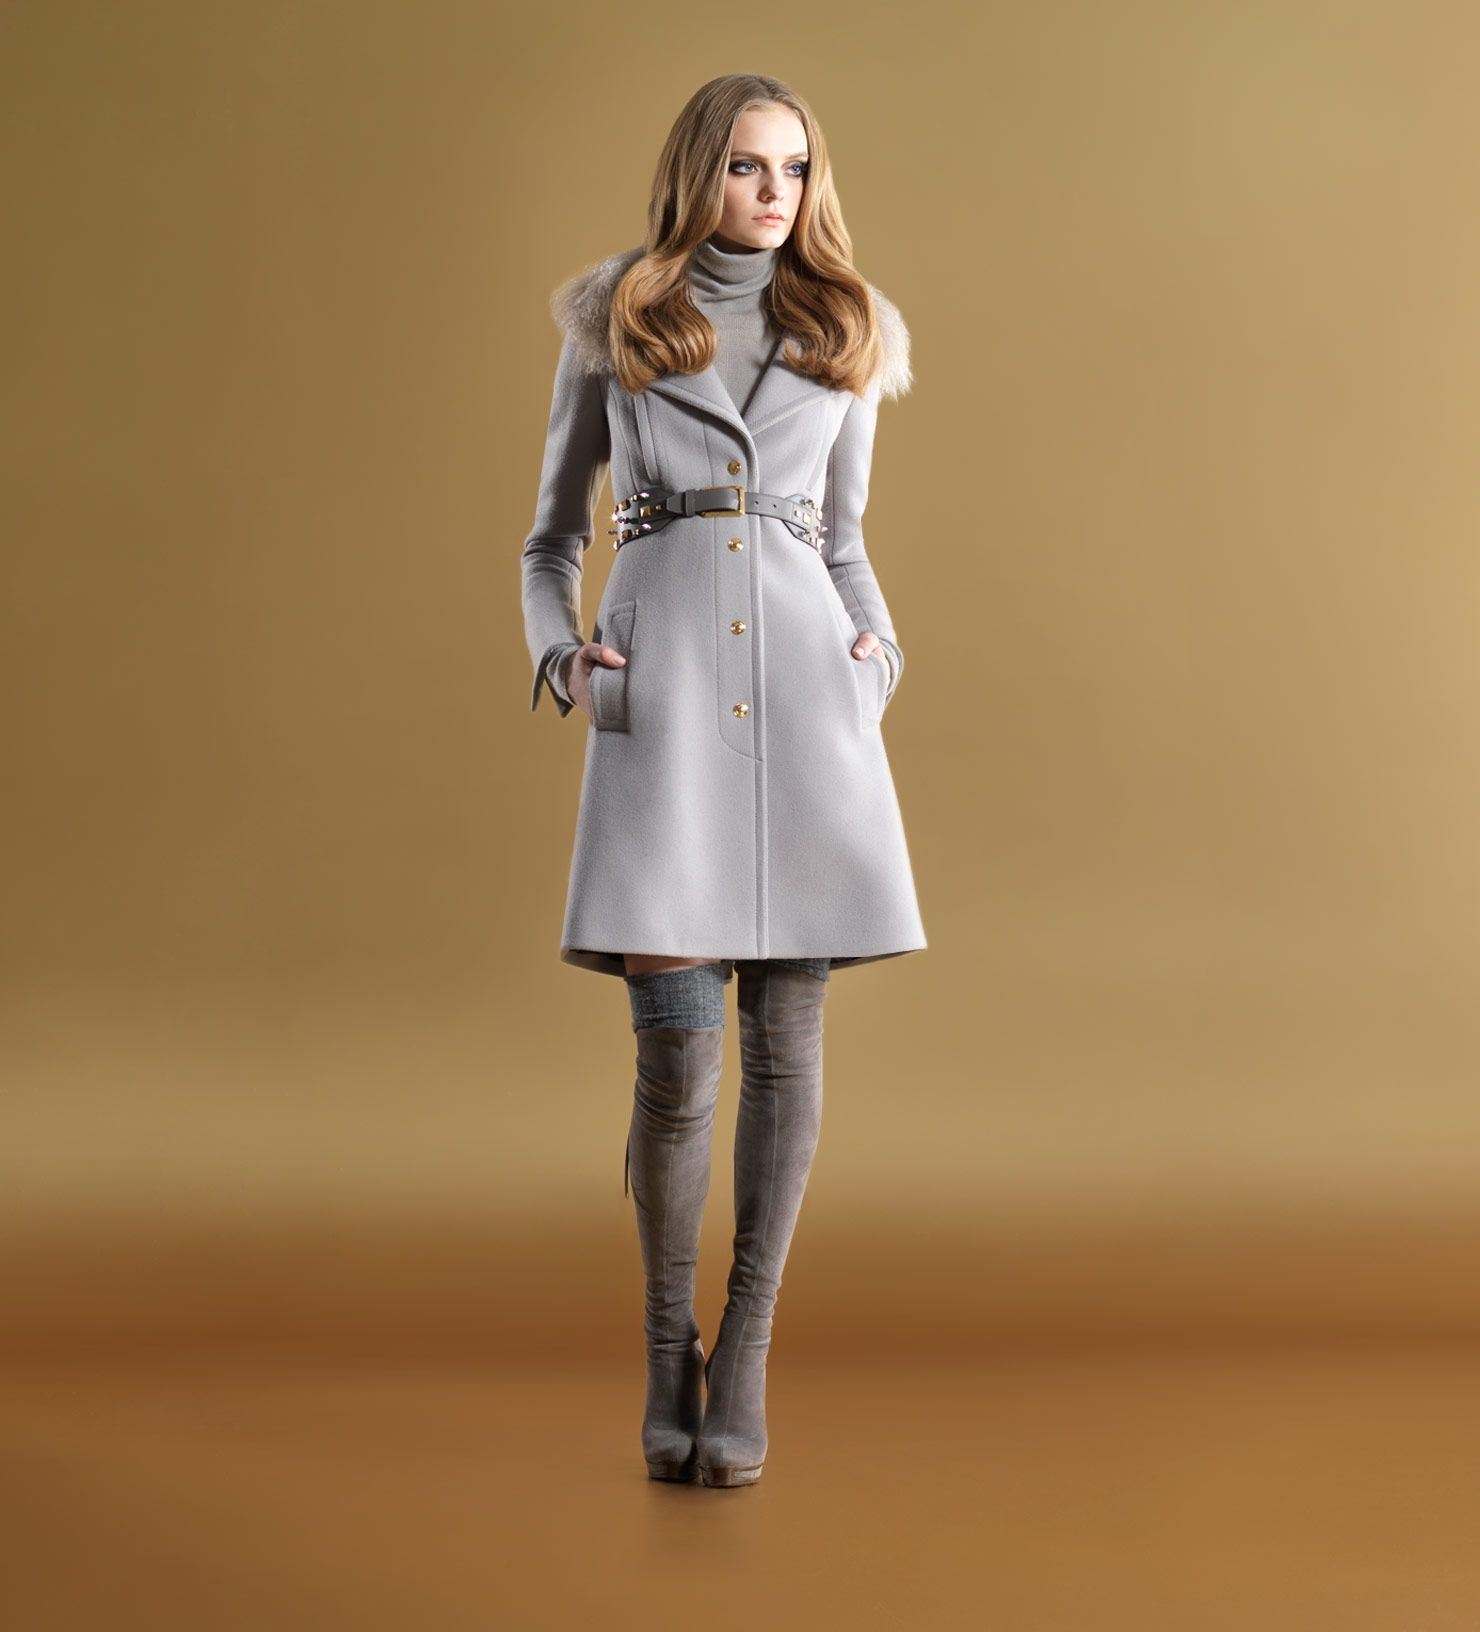 I am a sucker for a good coat.  And starting to dig the over-the-knee boot idea again.